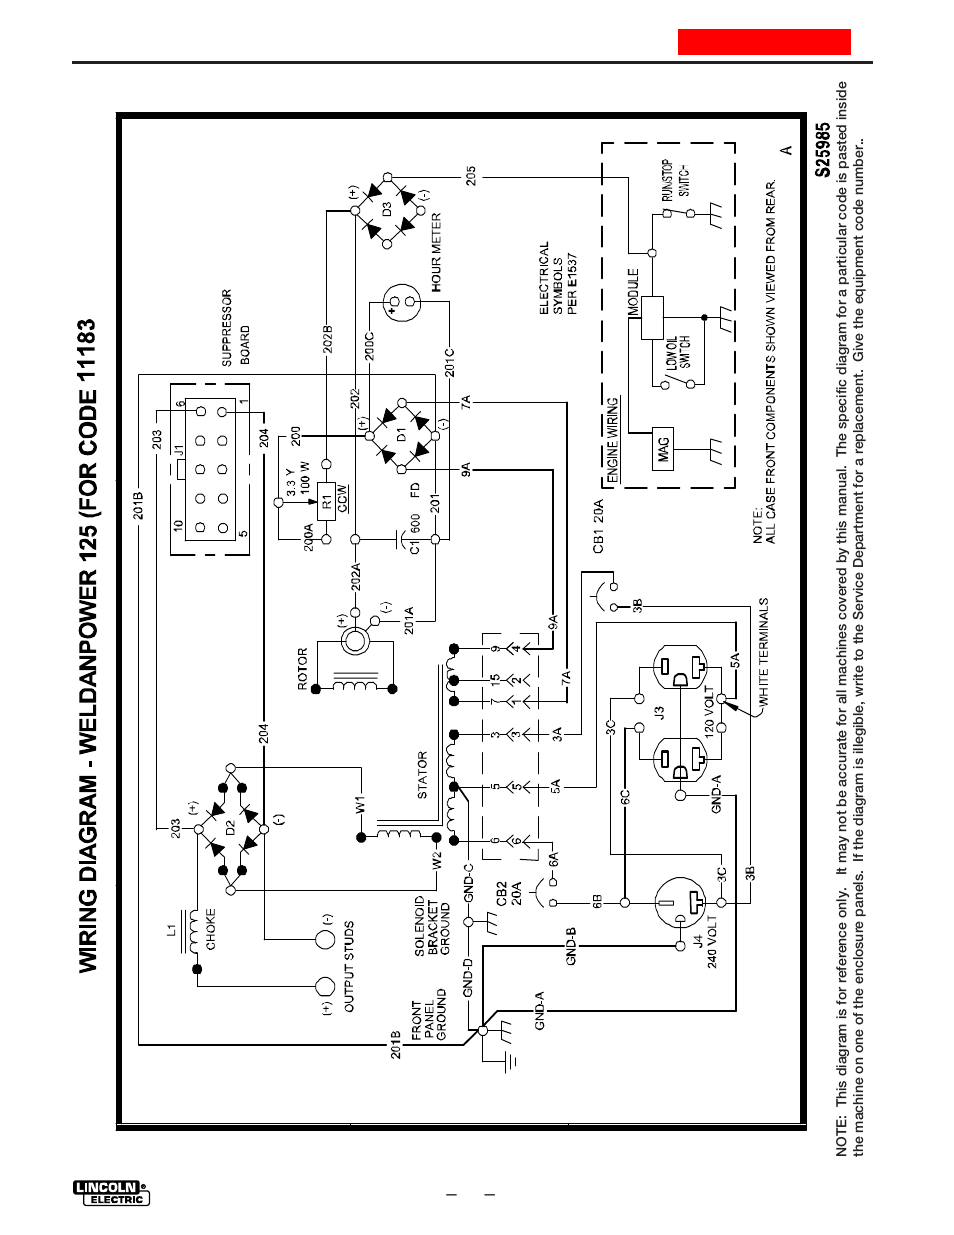 Lincoln Electric Wiring Diagram 31 Wiring Diagram Images